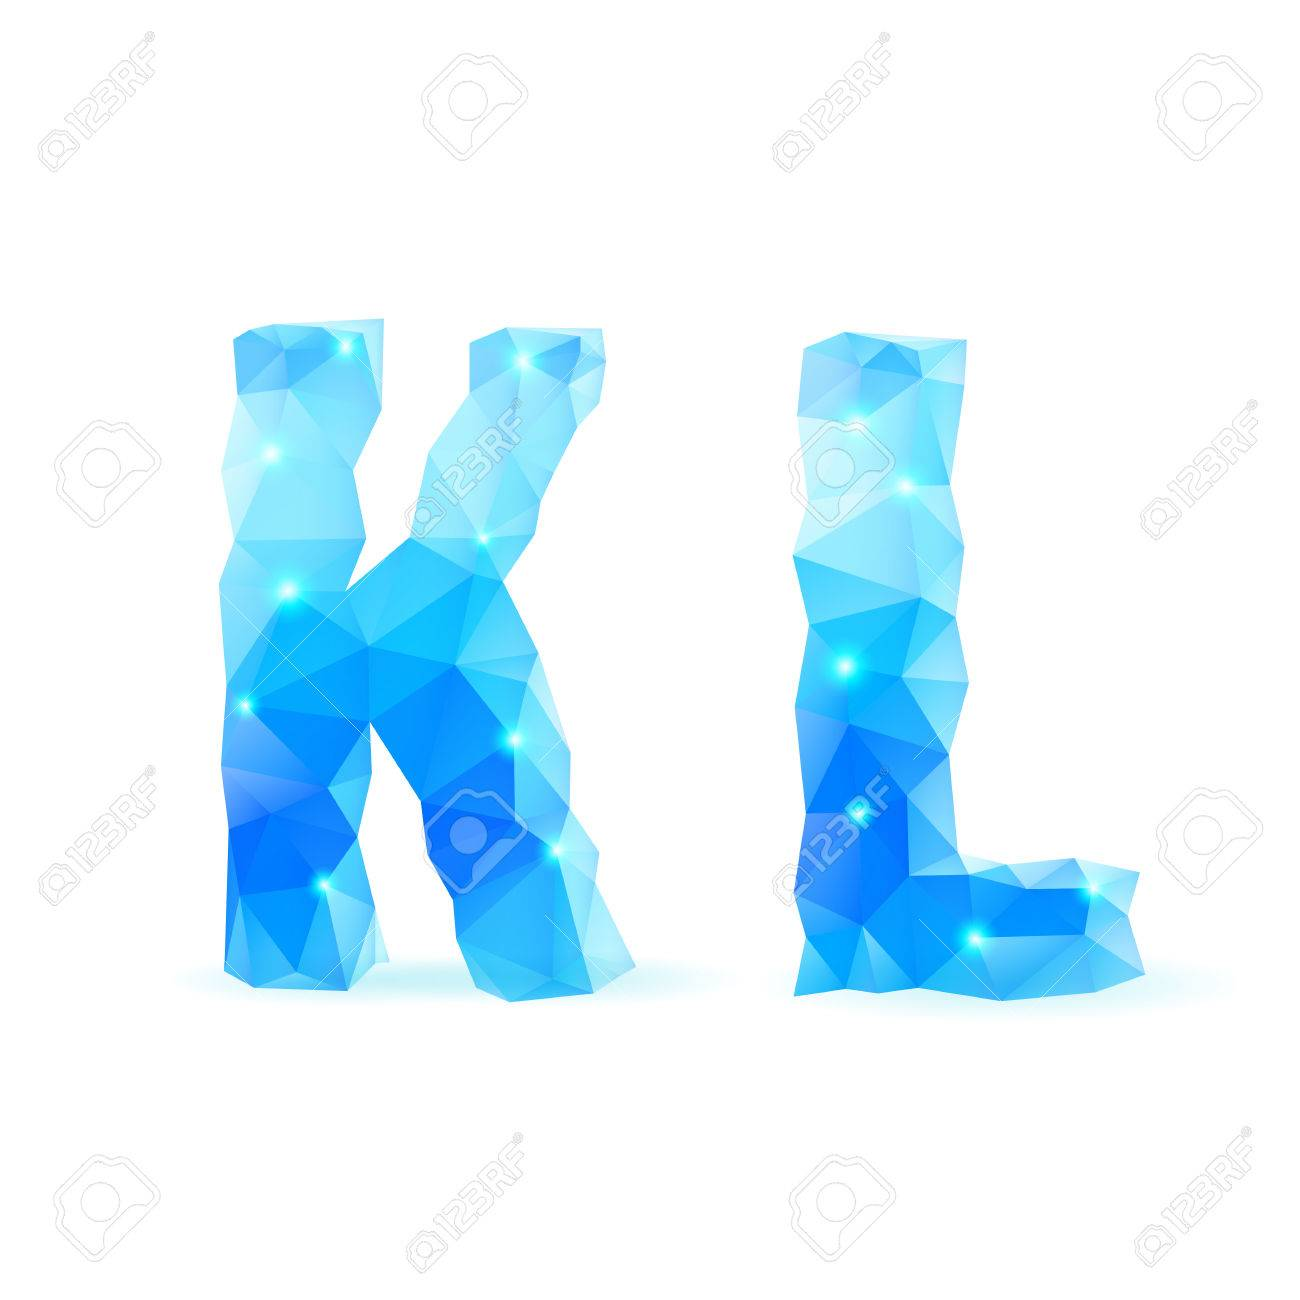 crystal style k and l letters stock vector 28580205